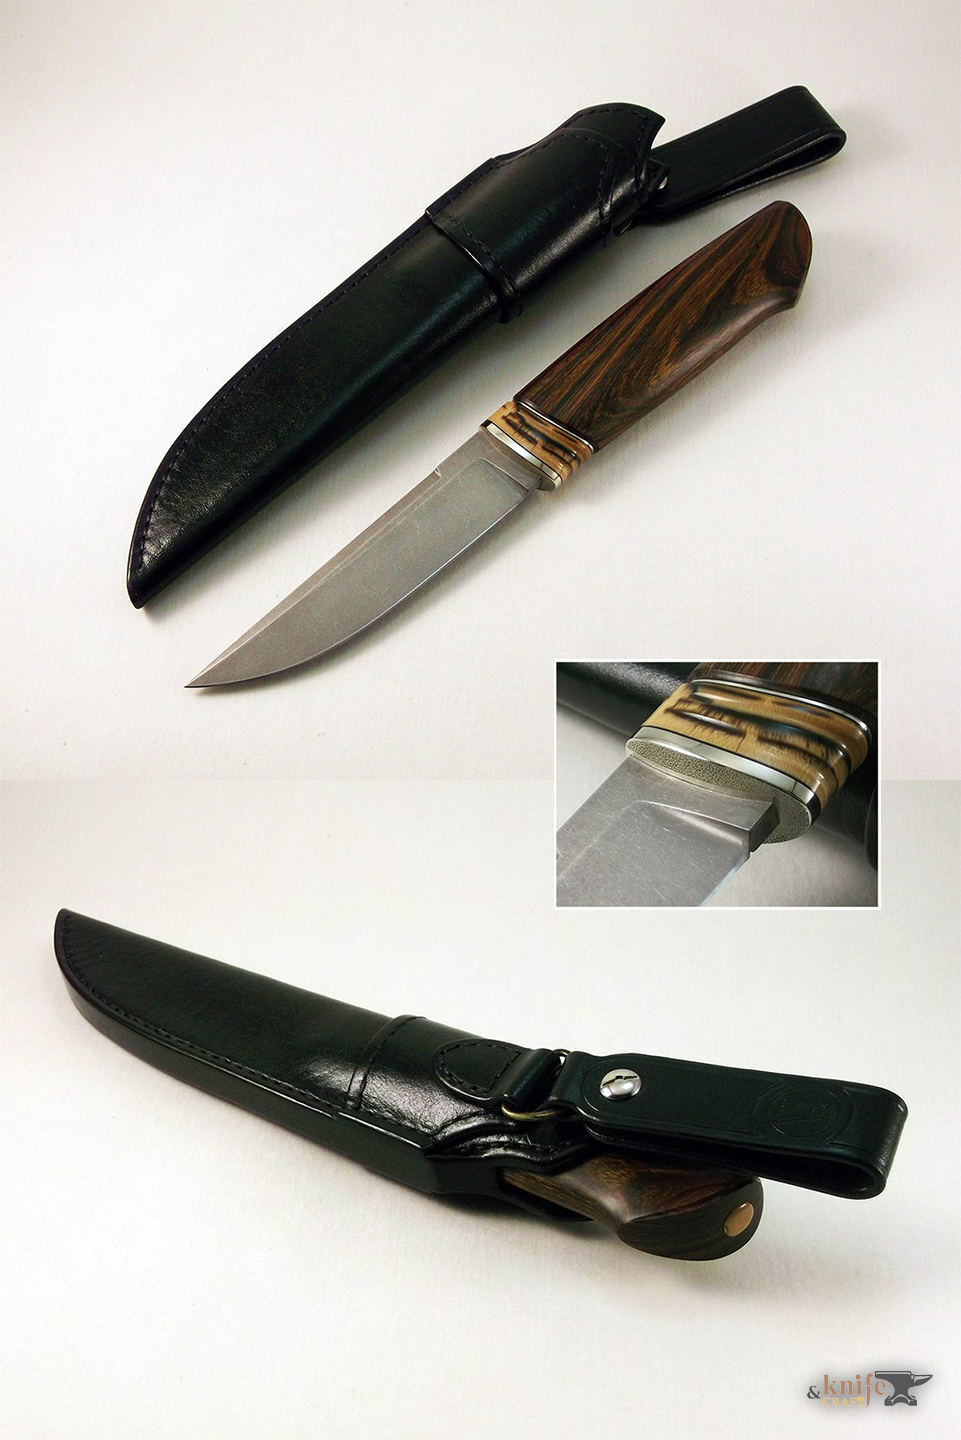 Best handemade Scandinavian knife 19 cm in Petrozavodsk